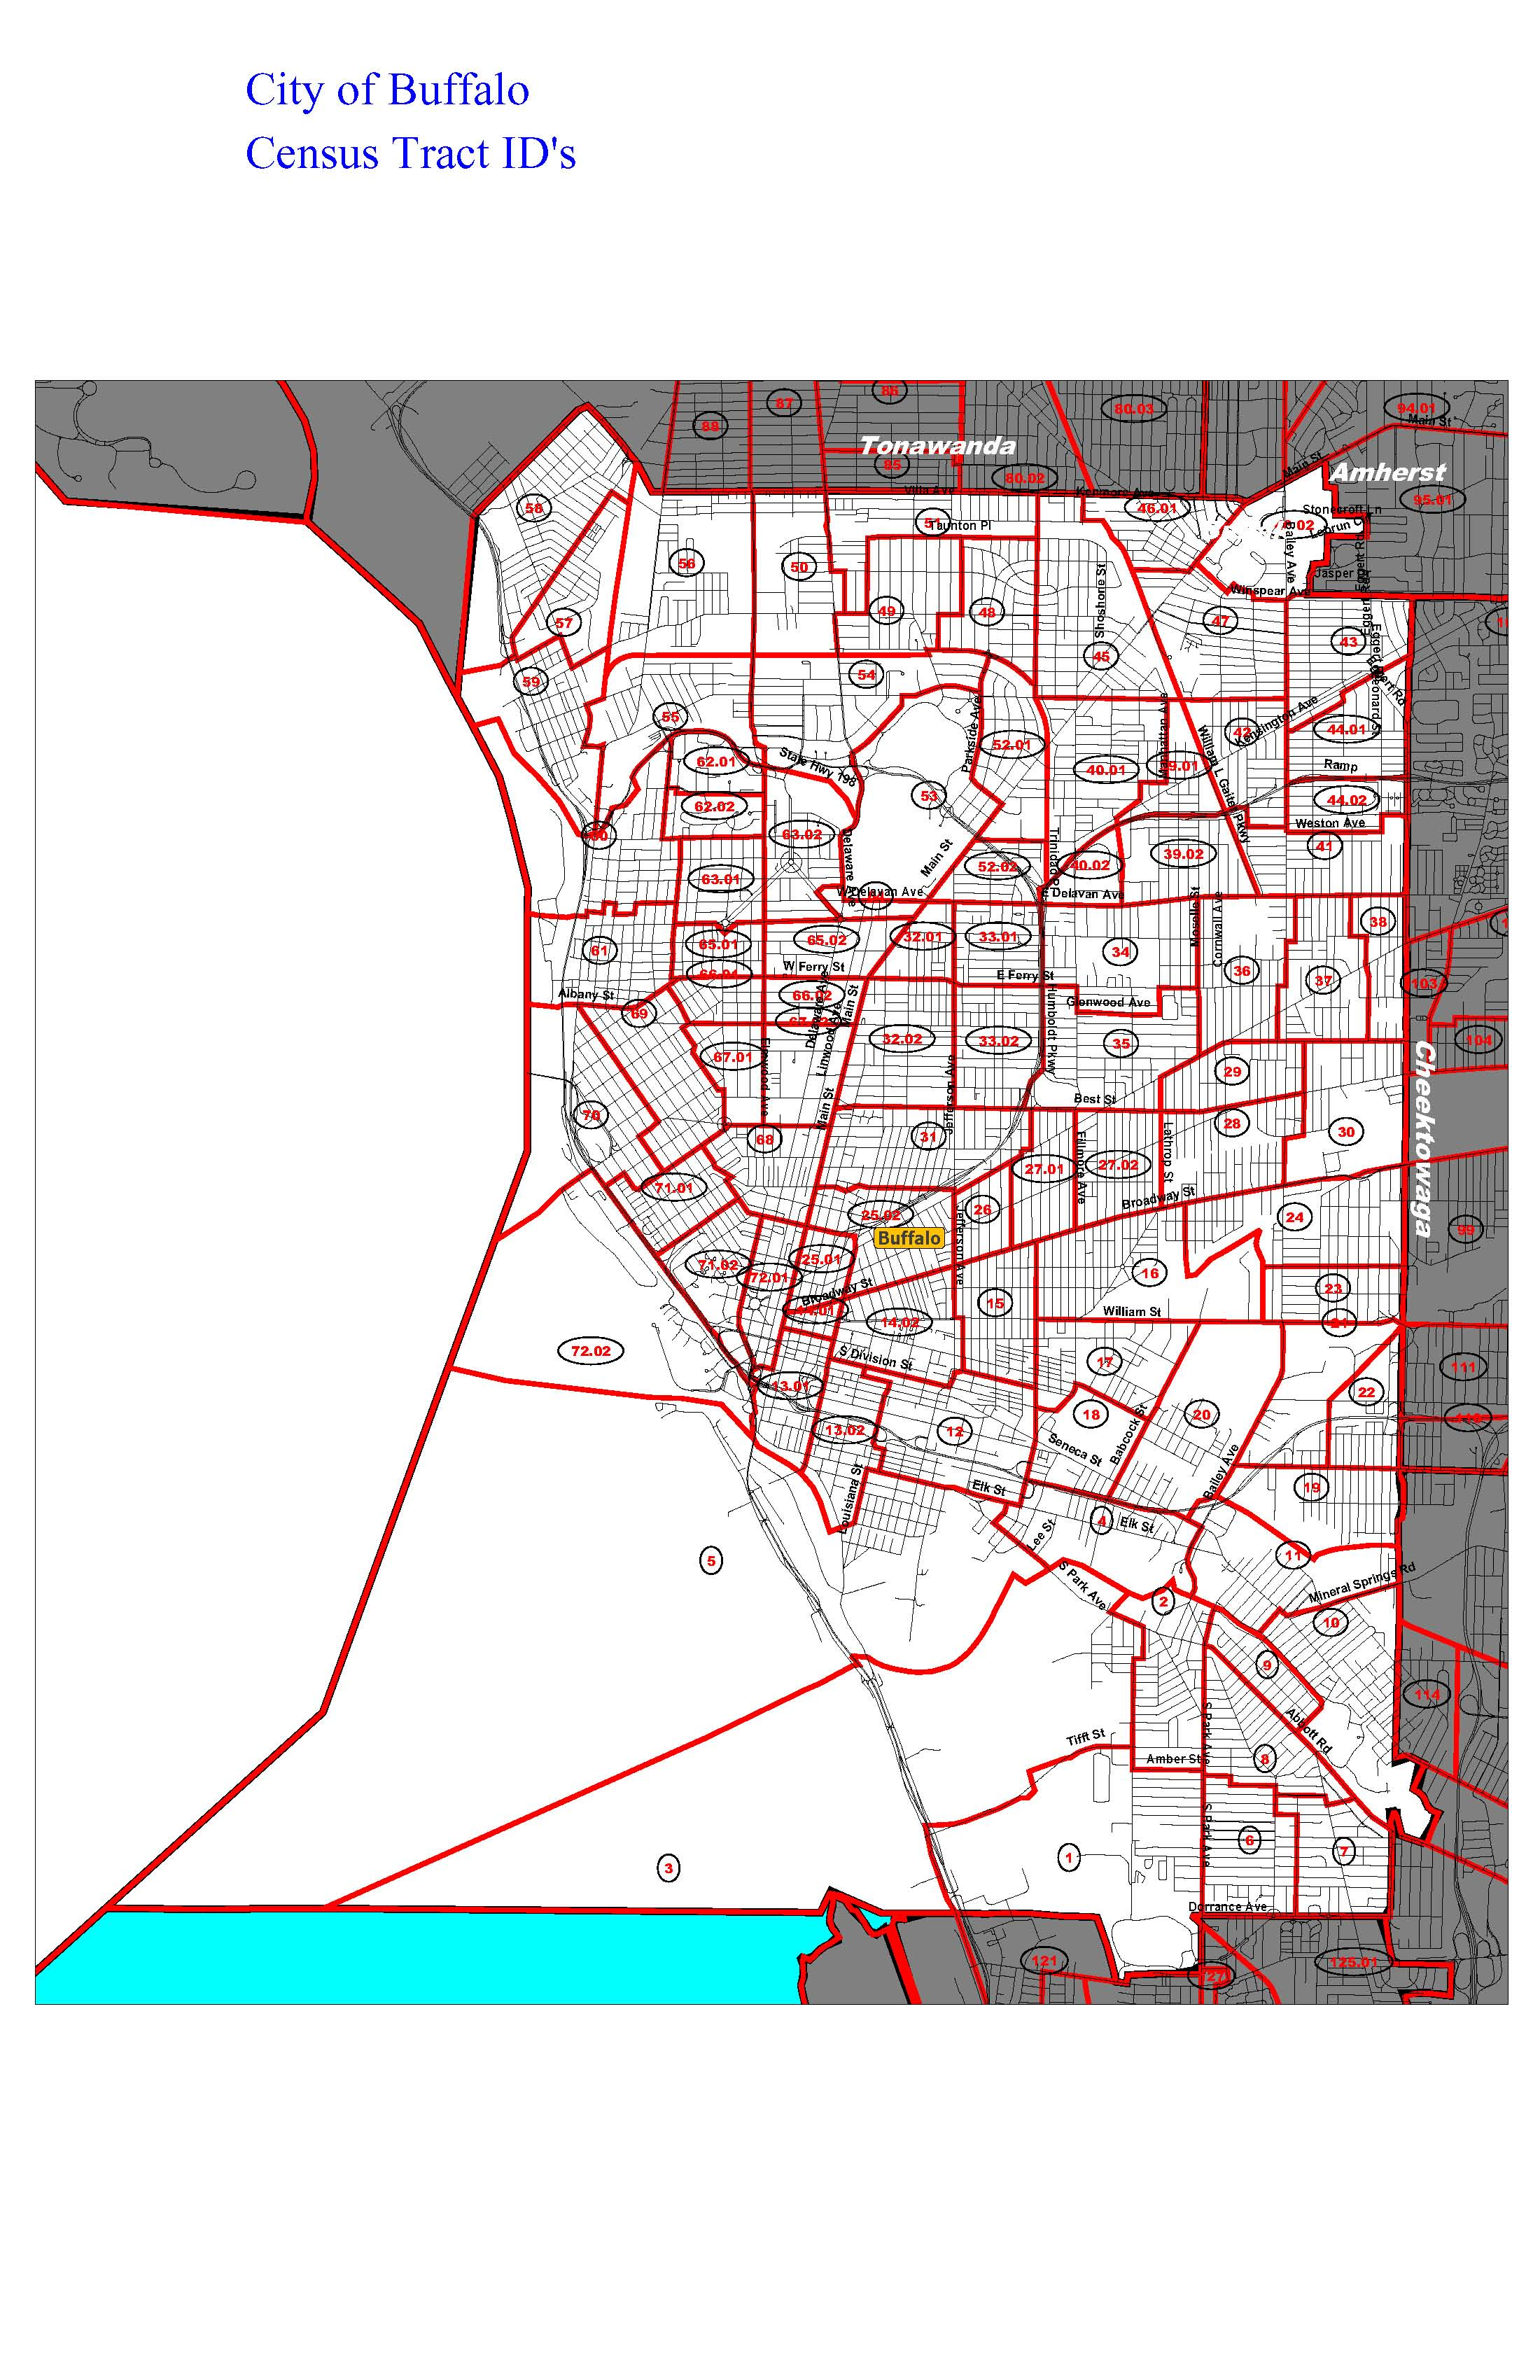 Buffalo Zip Code Map Map of City of Buffalo indicating Census Tracts | Erie County